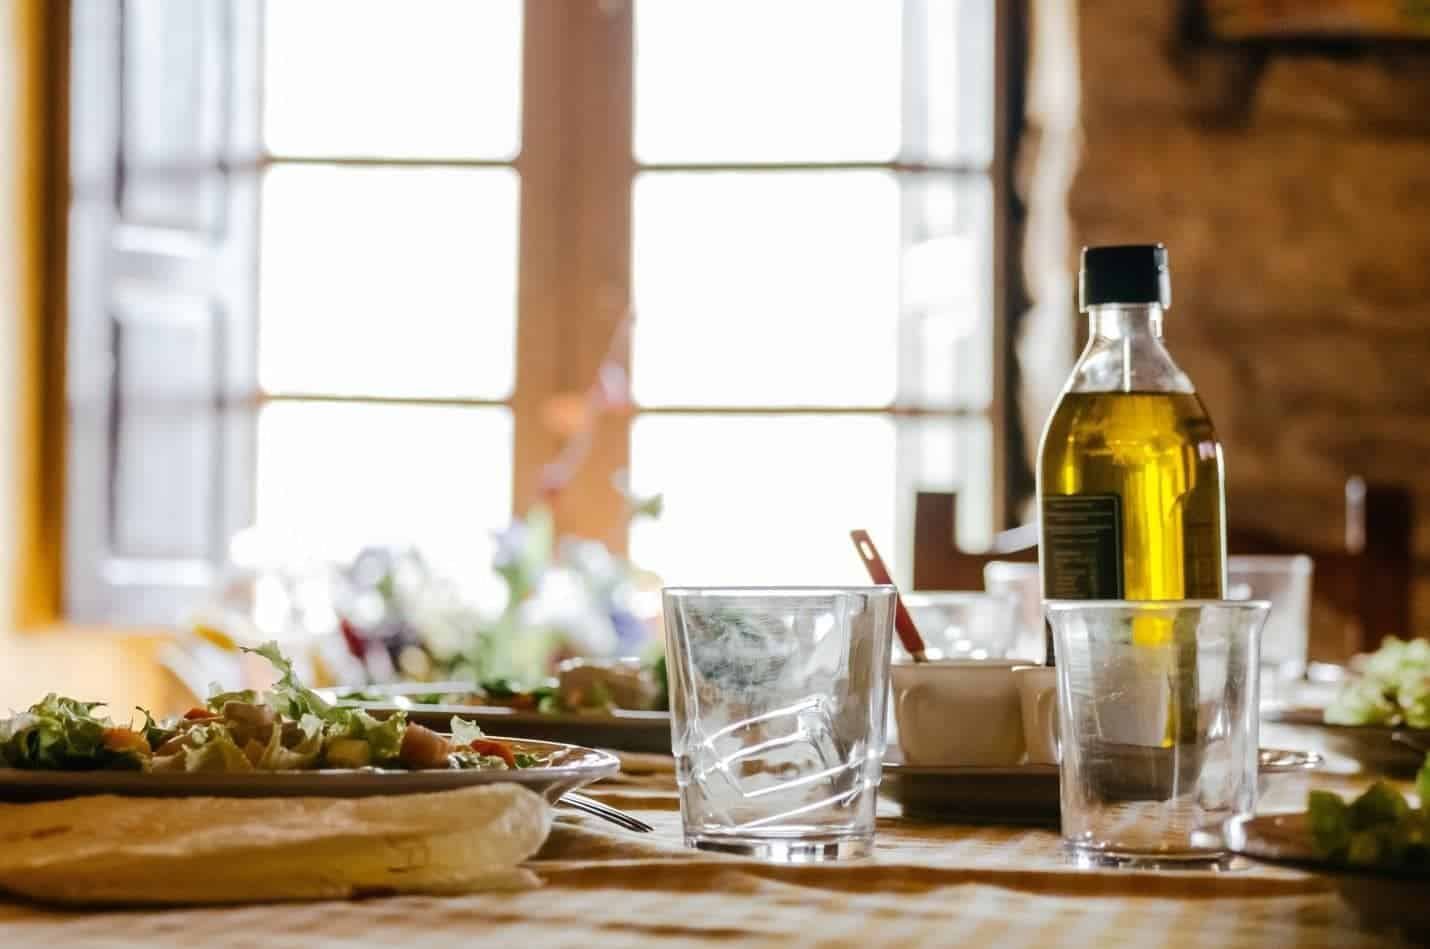 Best Olive Oil Brands